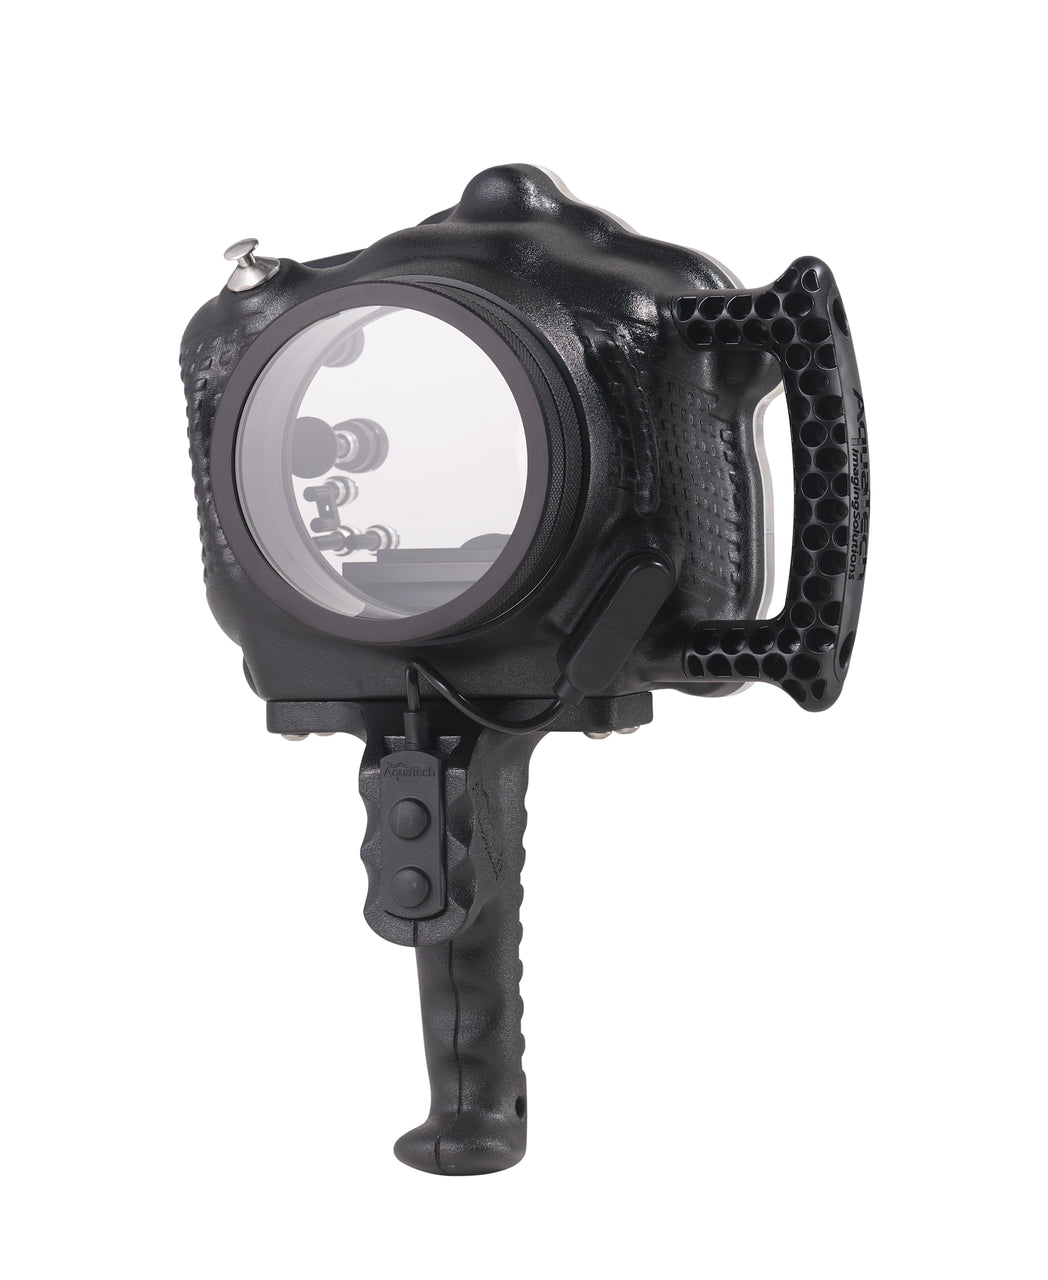 ATB-6300 for Sony A6300 Water Housing <br> Clearance Category-Second [Black]